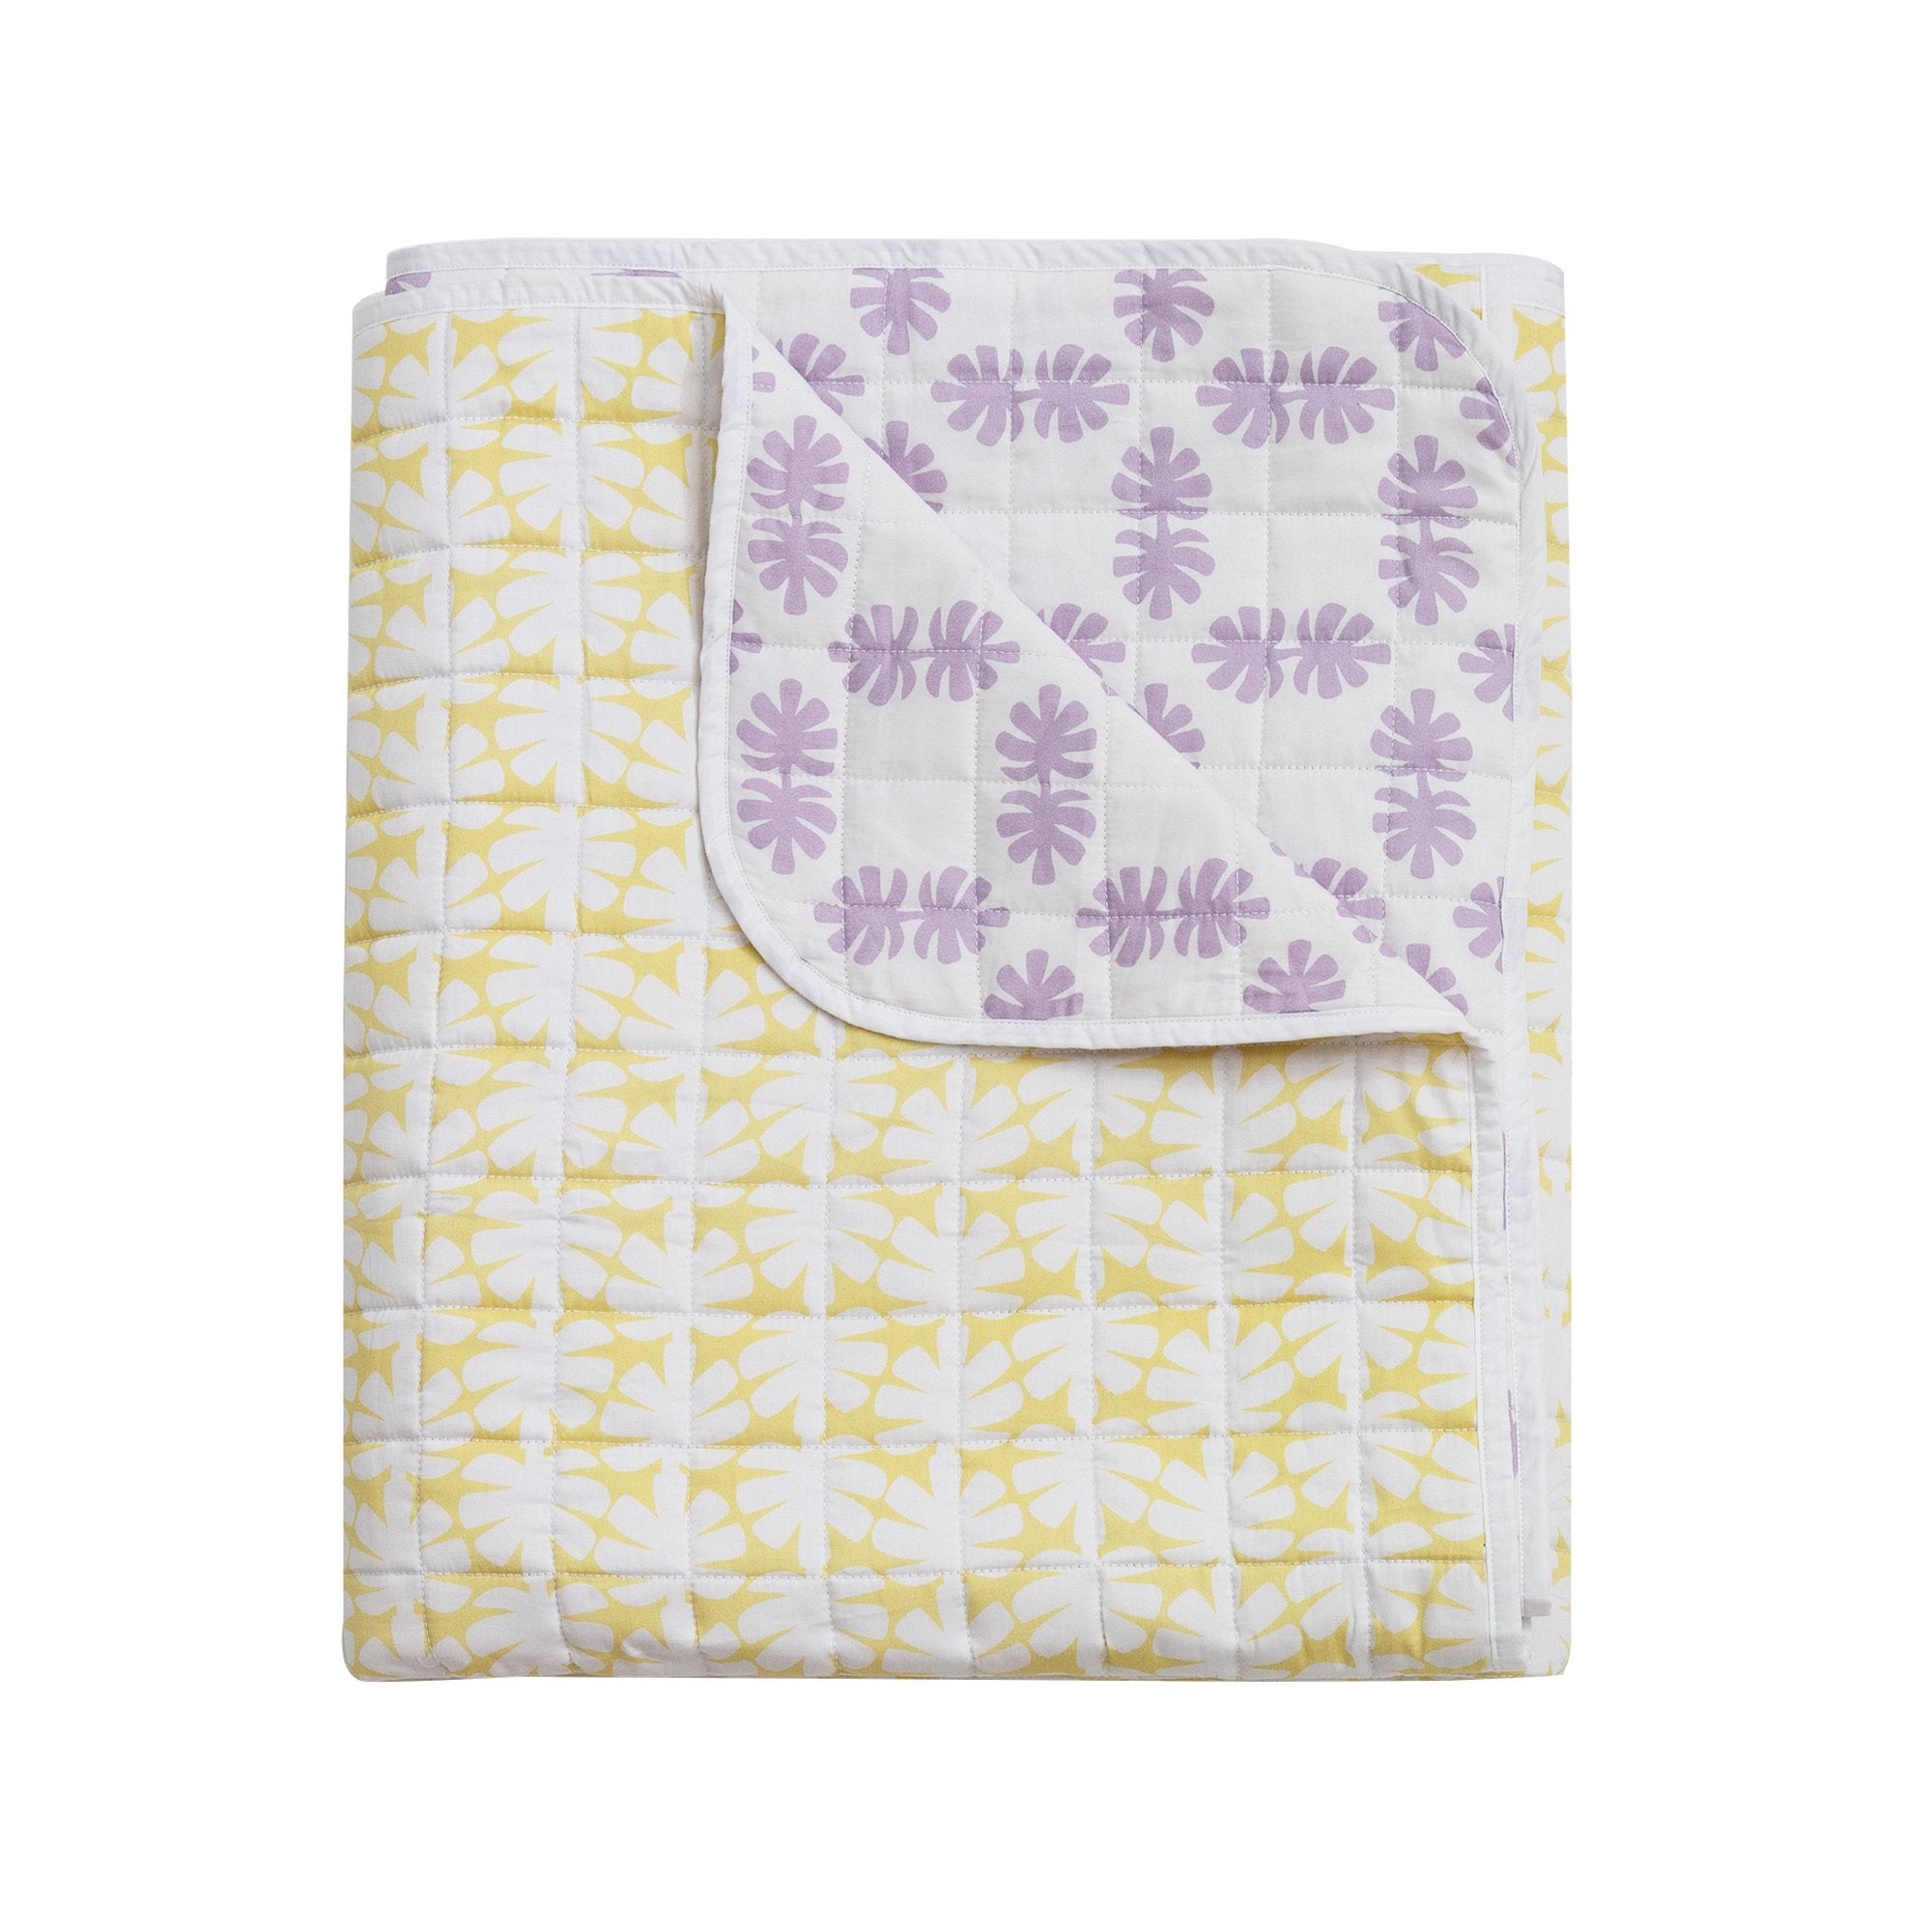 Kikau's Lemon and Lilac Coconut Palm Quilted Bedspread on white background